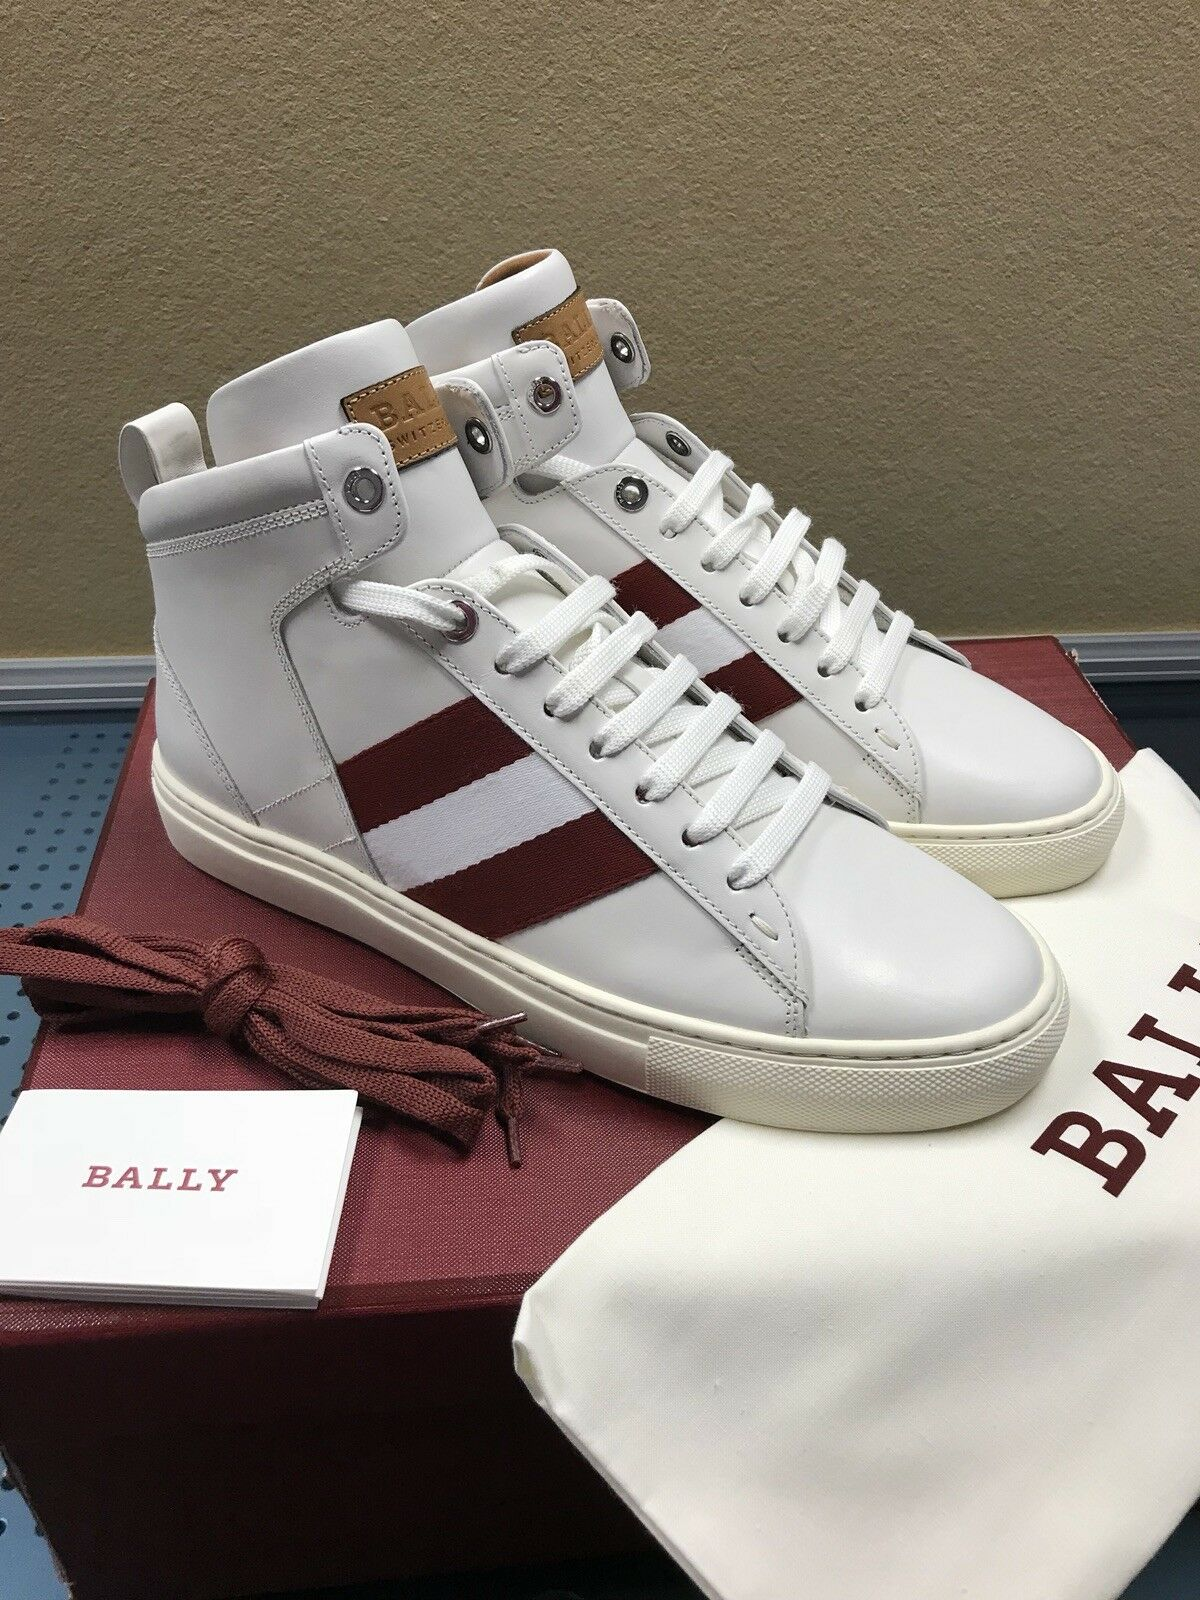 b8a448413559 Bally Men s Hedern Trainspotting Stripe Mid-Top Sneakers White       Red  Size 8